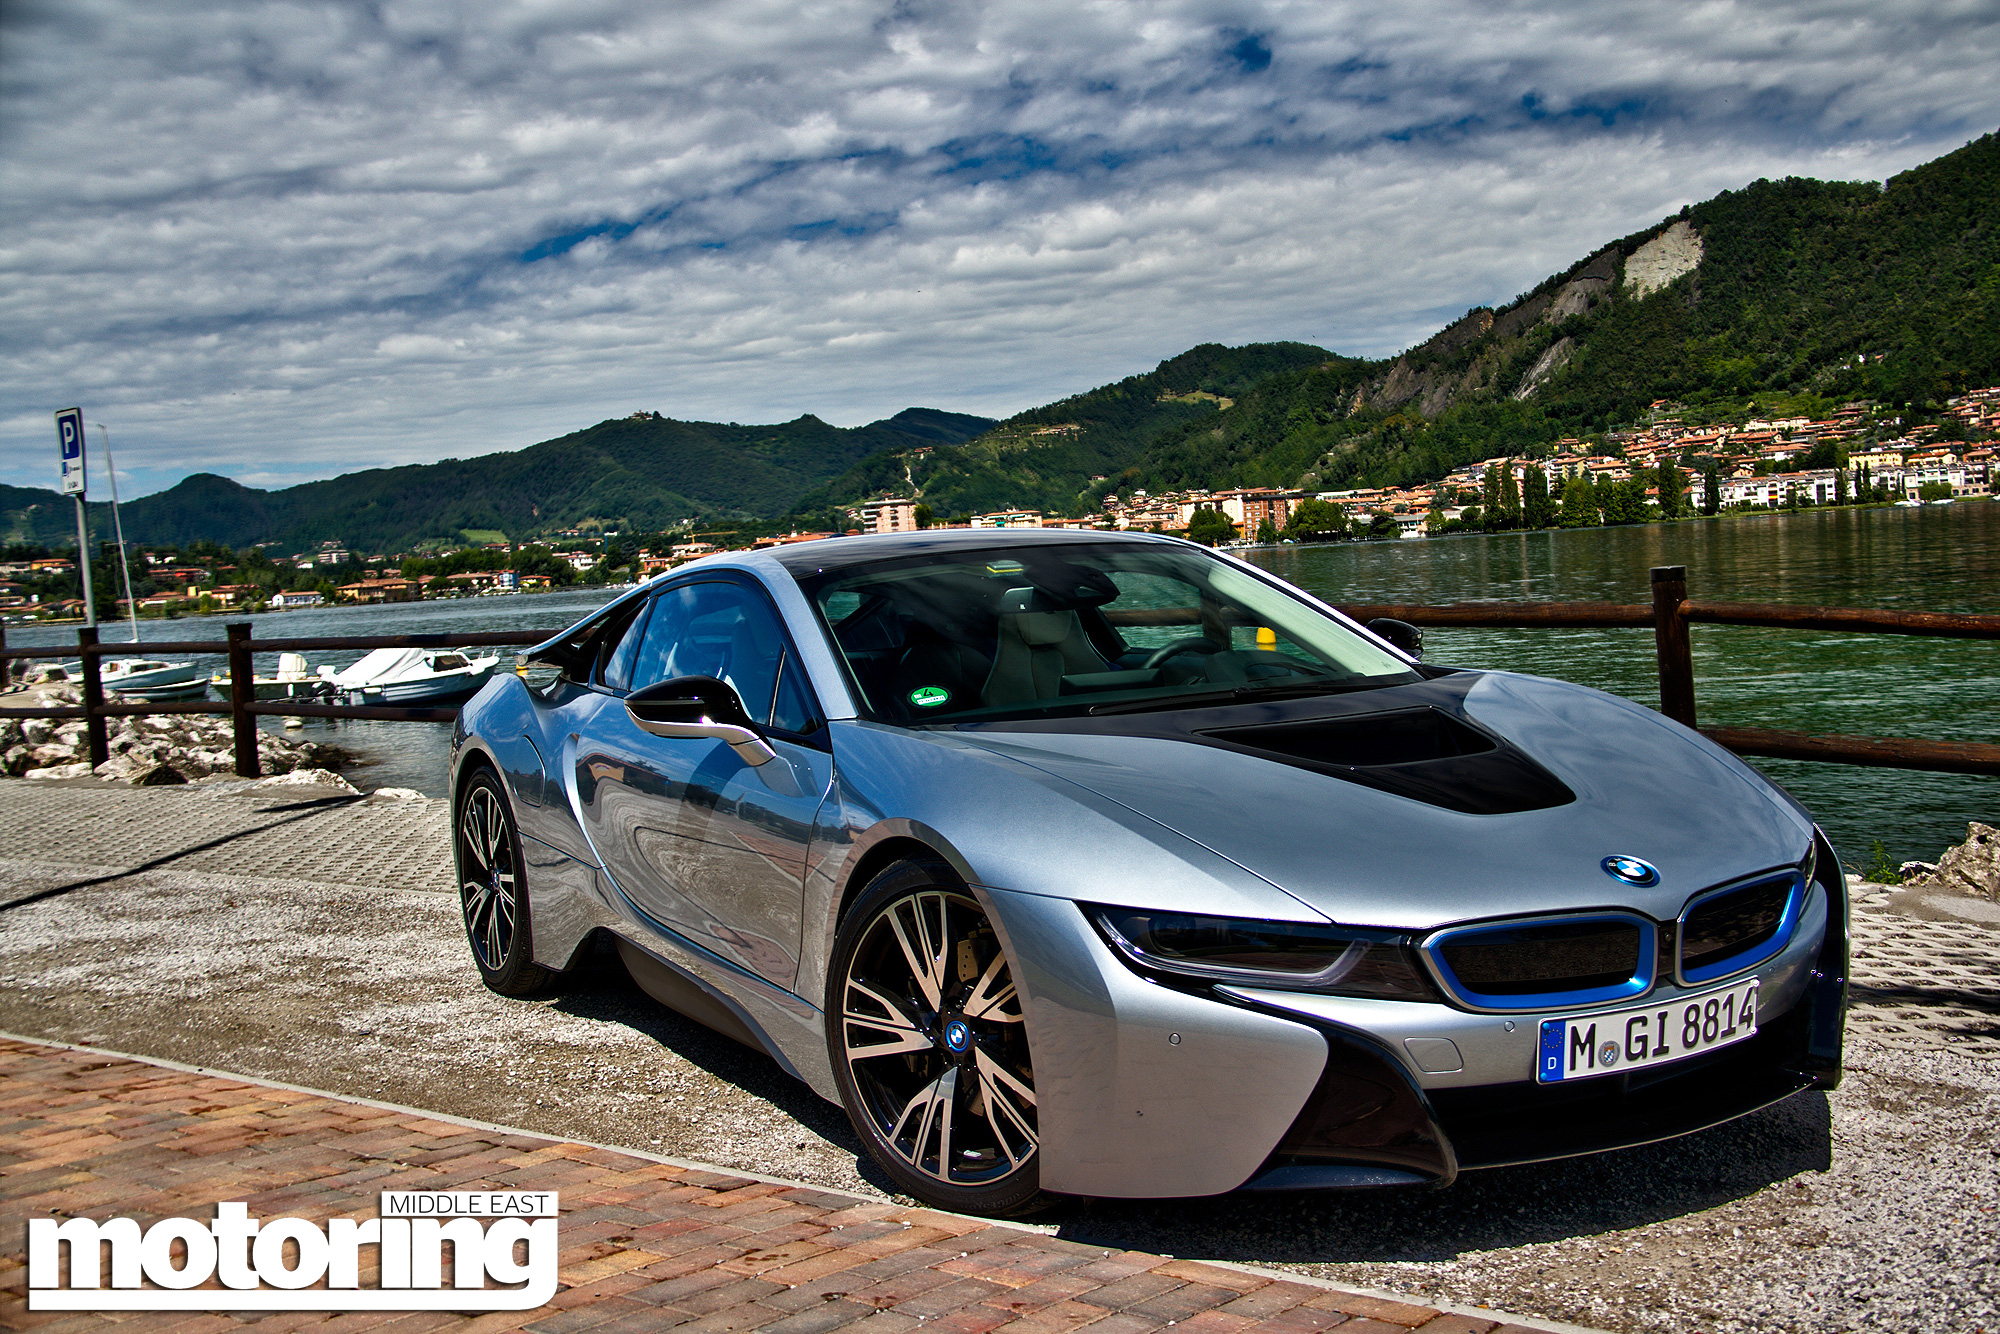 2015 bmw i8 review specs video pics price verdictmotoring middle east car news reviews. Black Bedroom Furniture Sets. Home Design Ideas